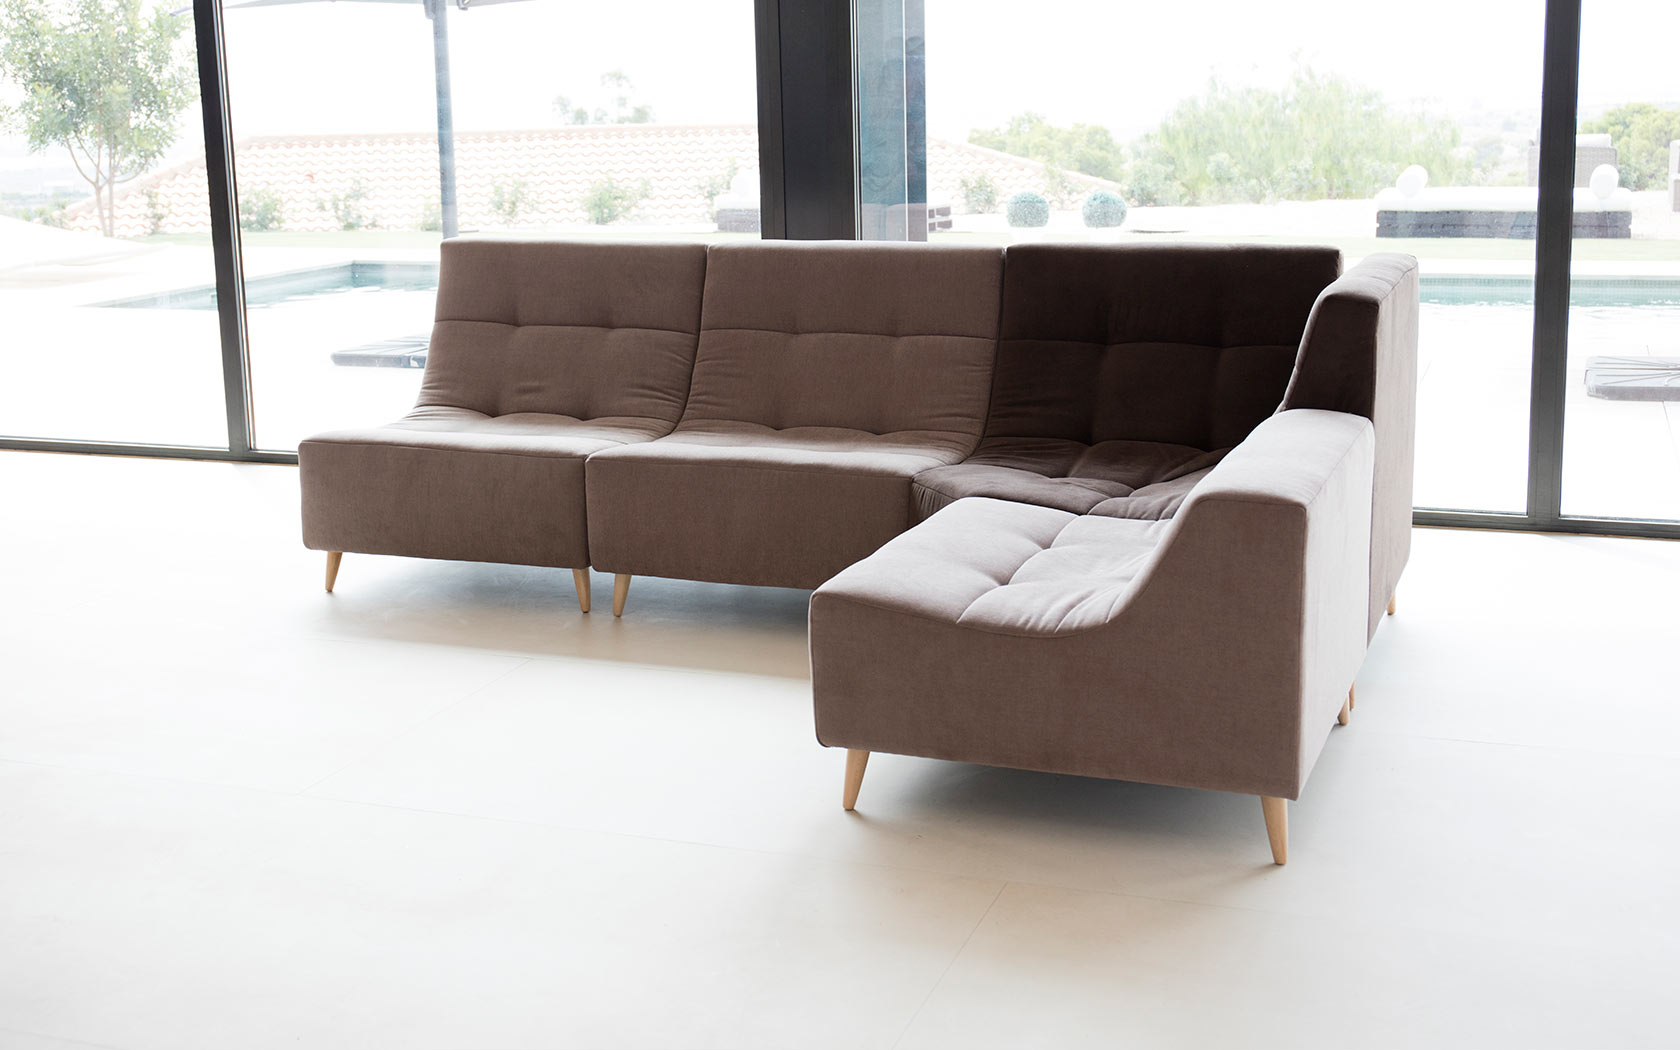 Luci Pop sofa fama 2019 14